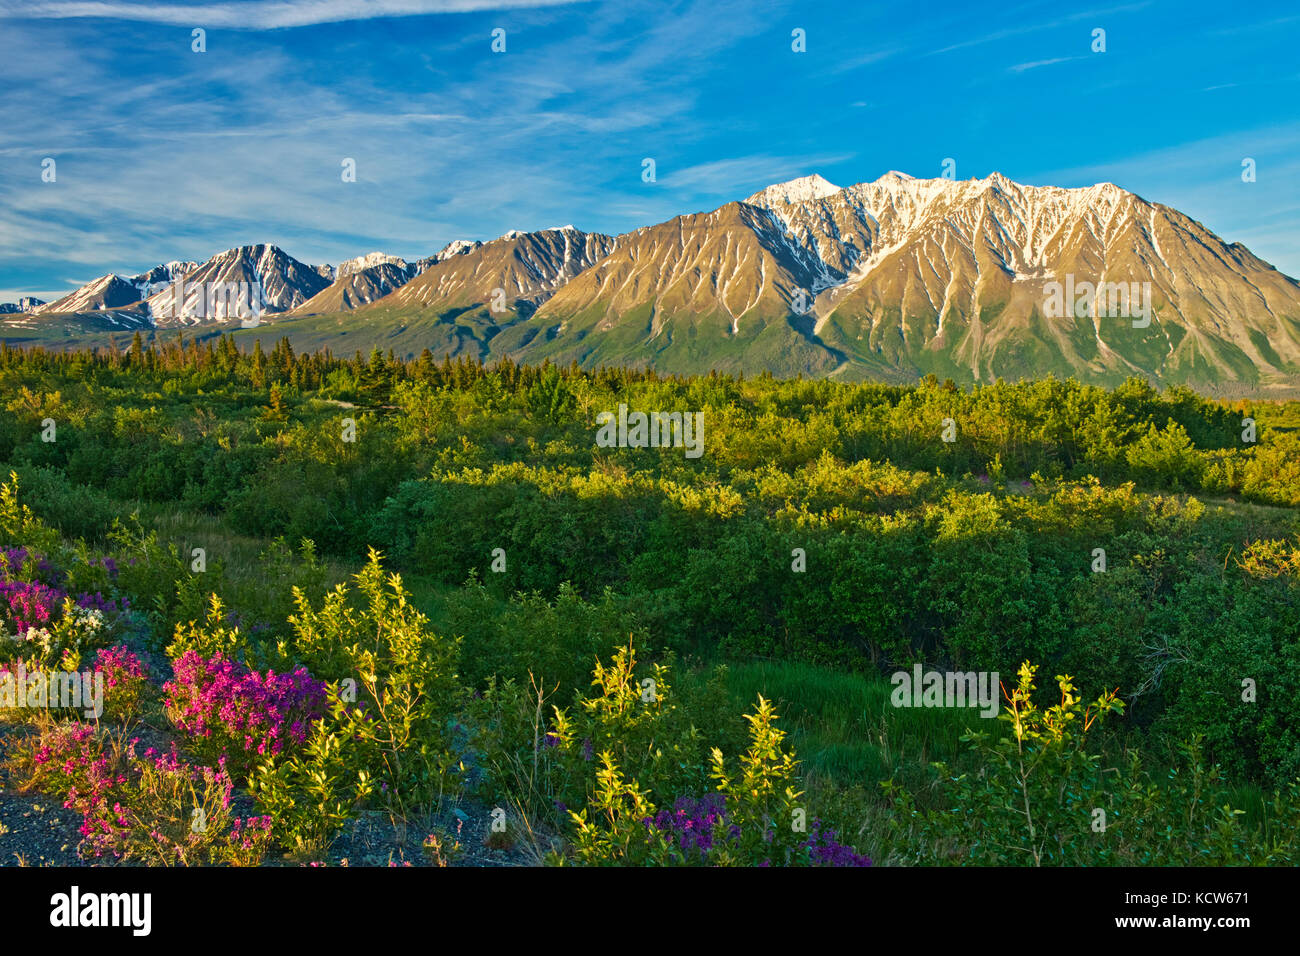 St. Elias Mountains, north of Haines Junction, Yukon, Canada - Stock Image